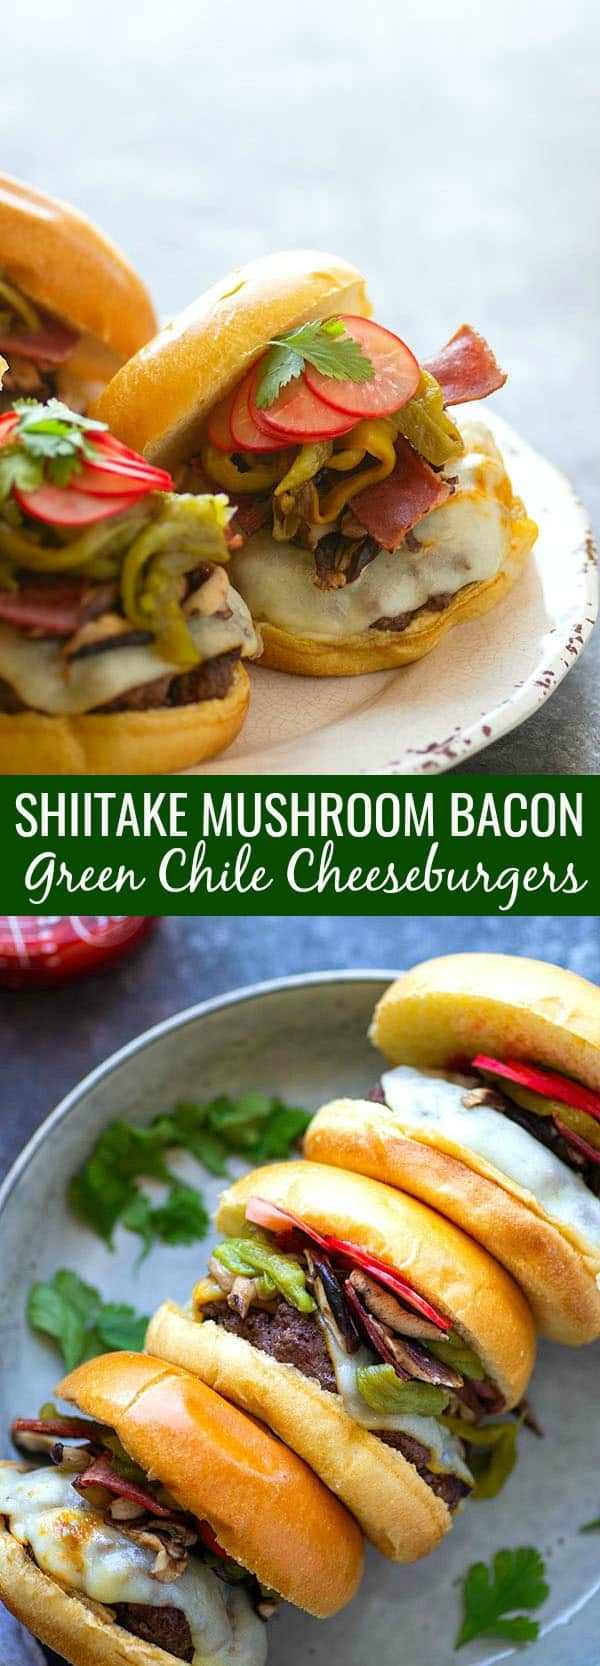 Green chile cheeseburgers are piled high with flavorful roasted chiles, tender shiitake mushrooms, and crispy bacon for the ultimate take on this burger classic!